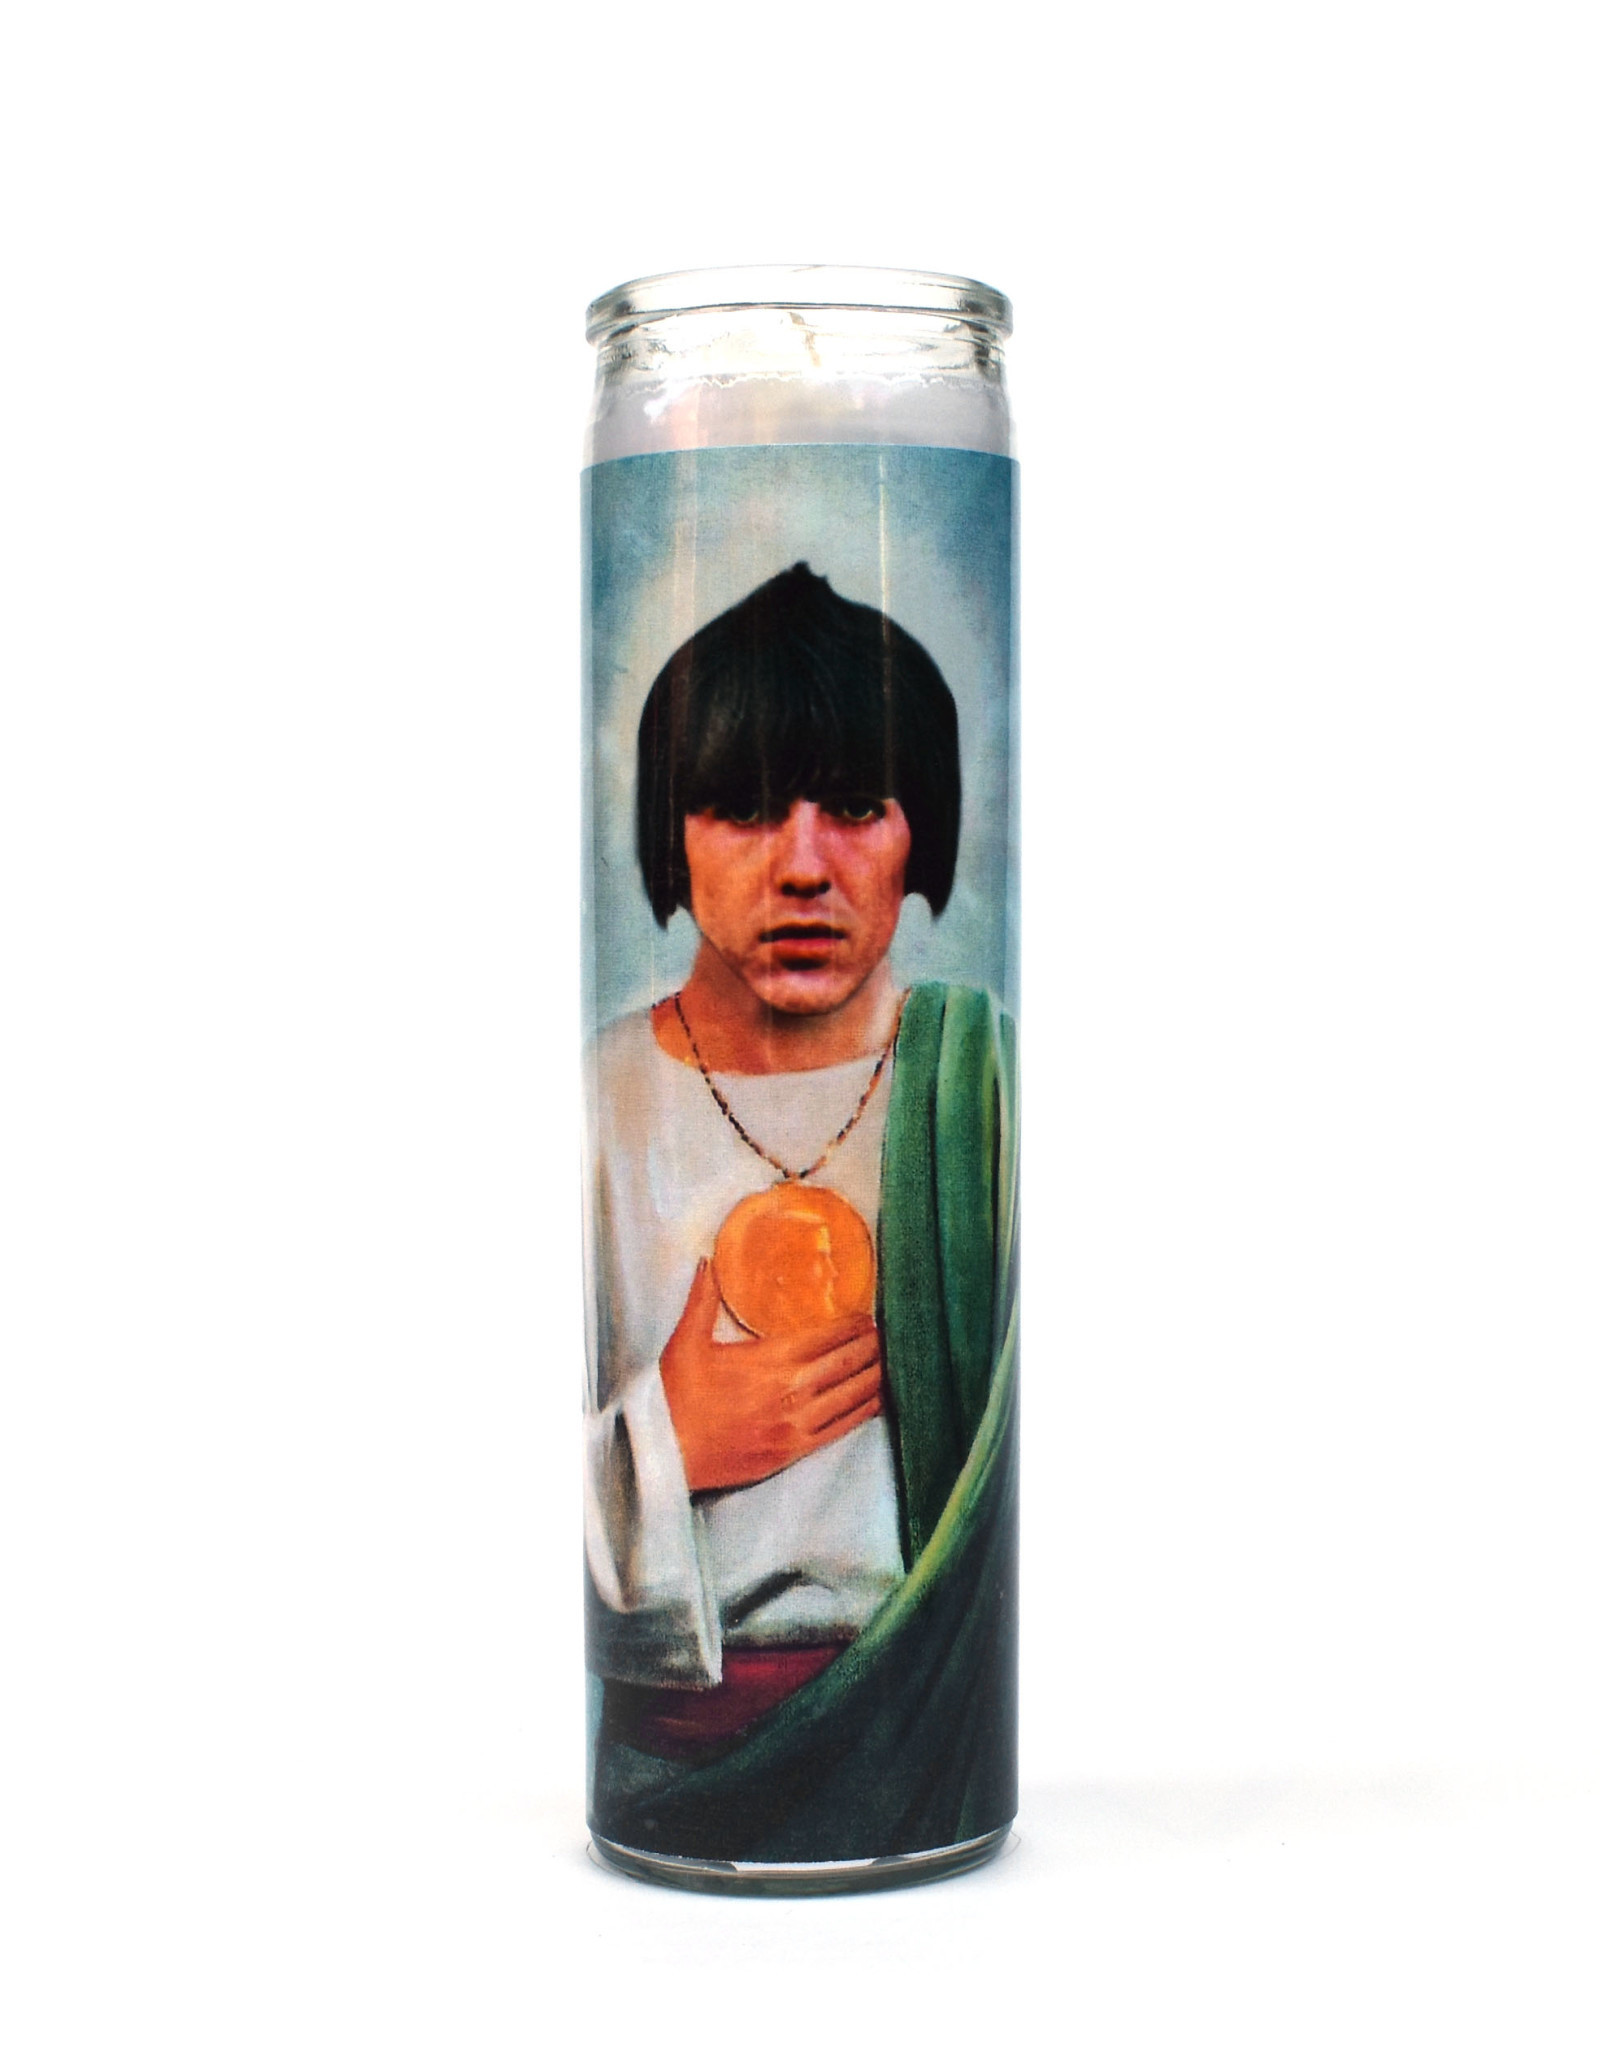 St. George (Beatles) Prayer Candle